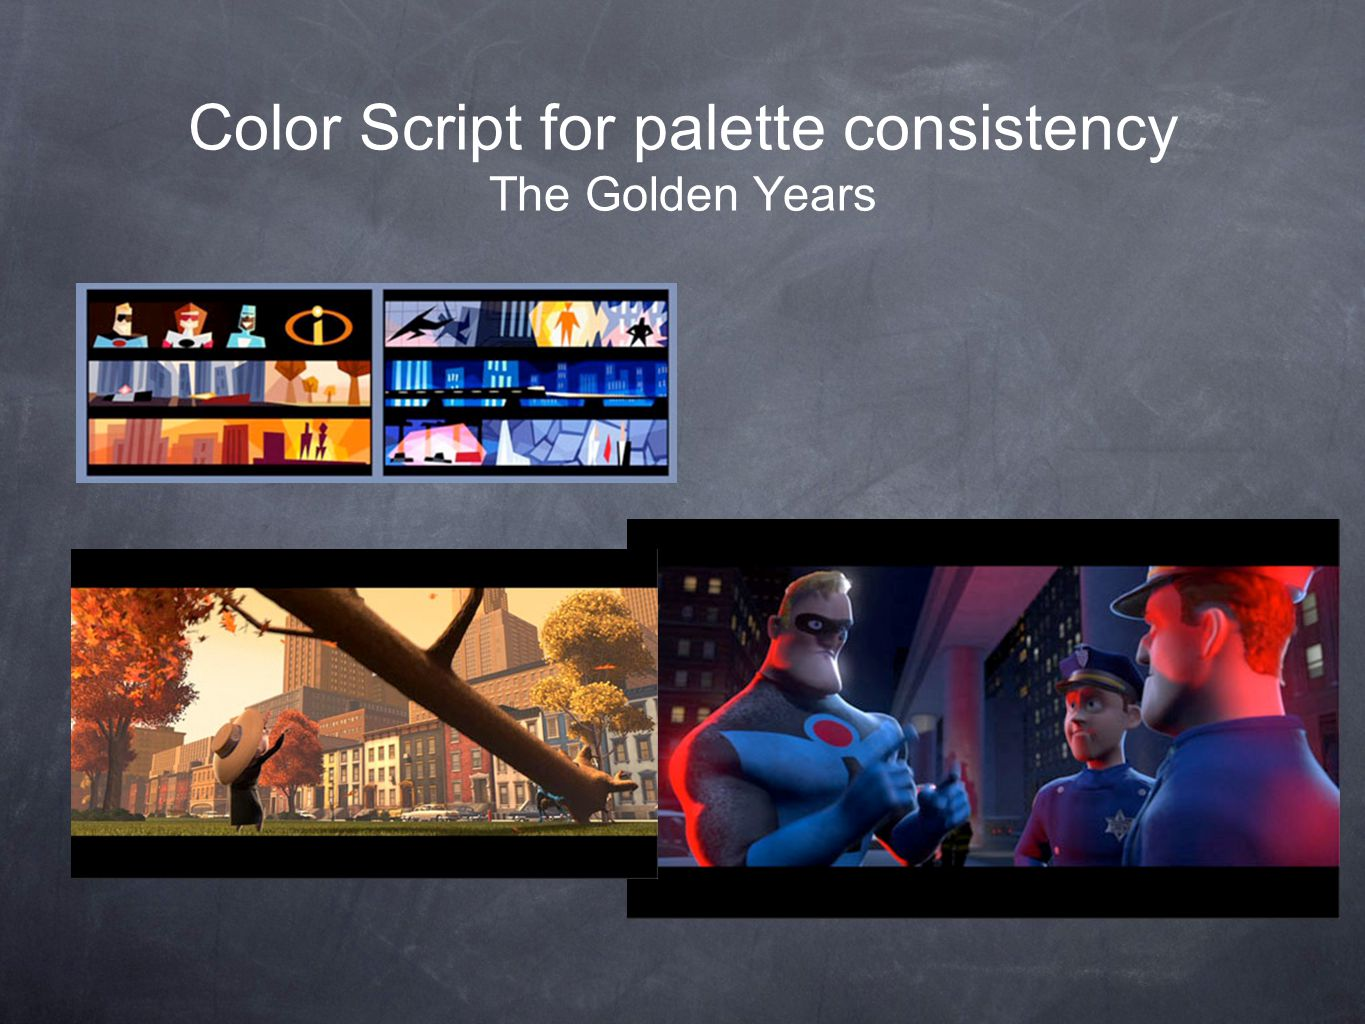 Color Script for palette consistency The Golden Years